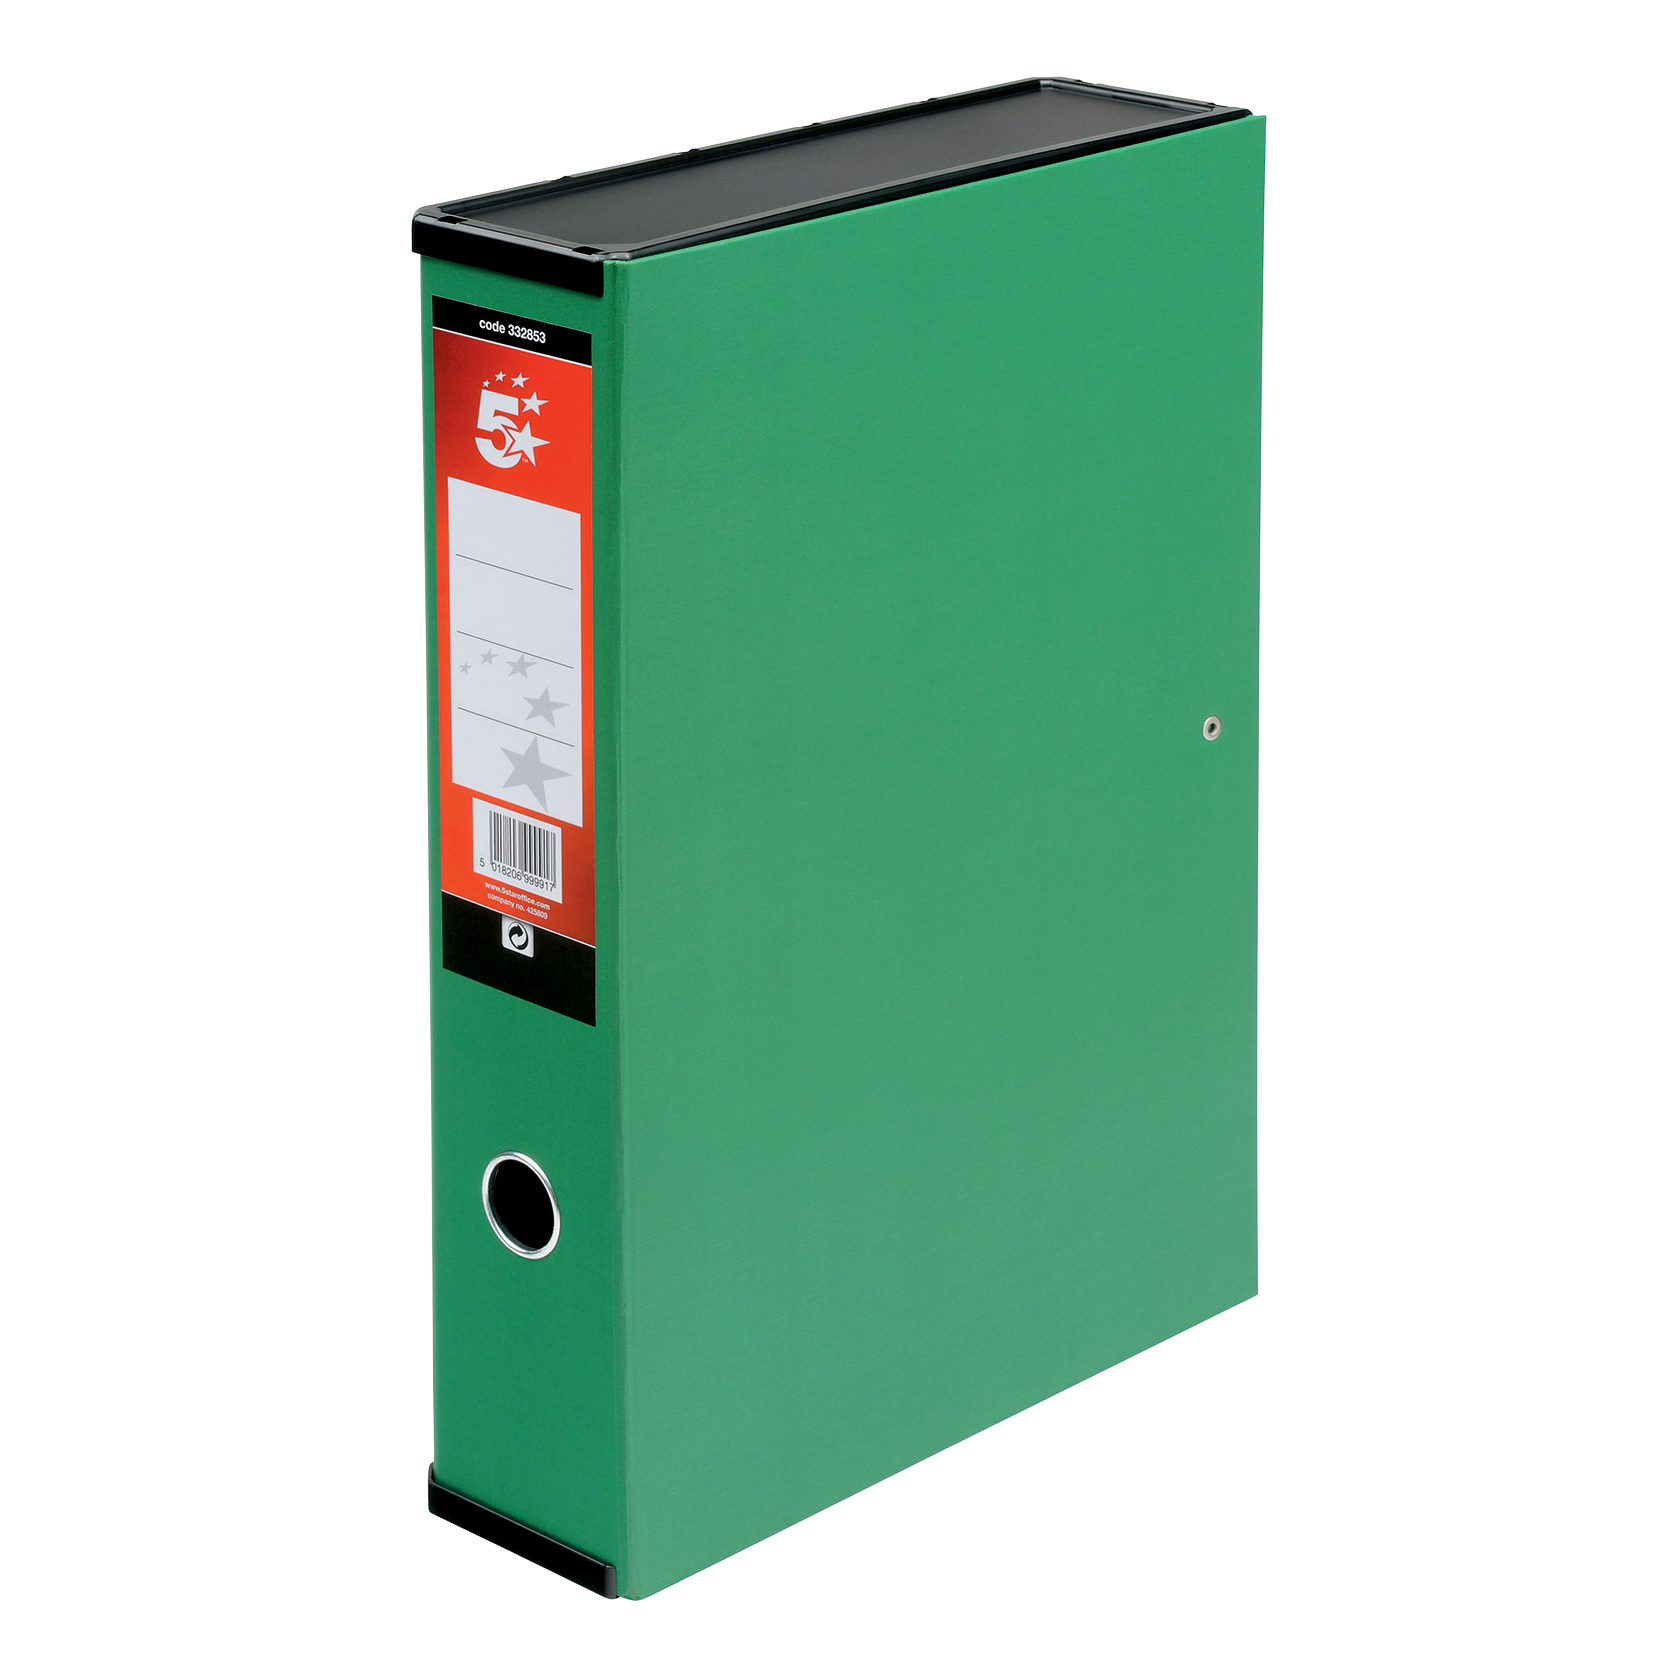 5 Star Office Box File Lock Spring with Push Button Closure 70mm Capacity Foolscap Green [Pack 5]